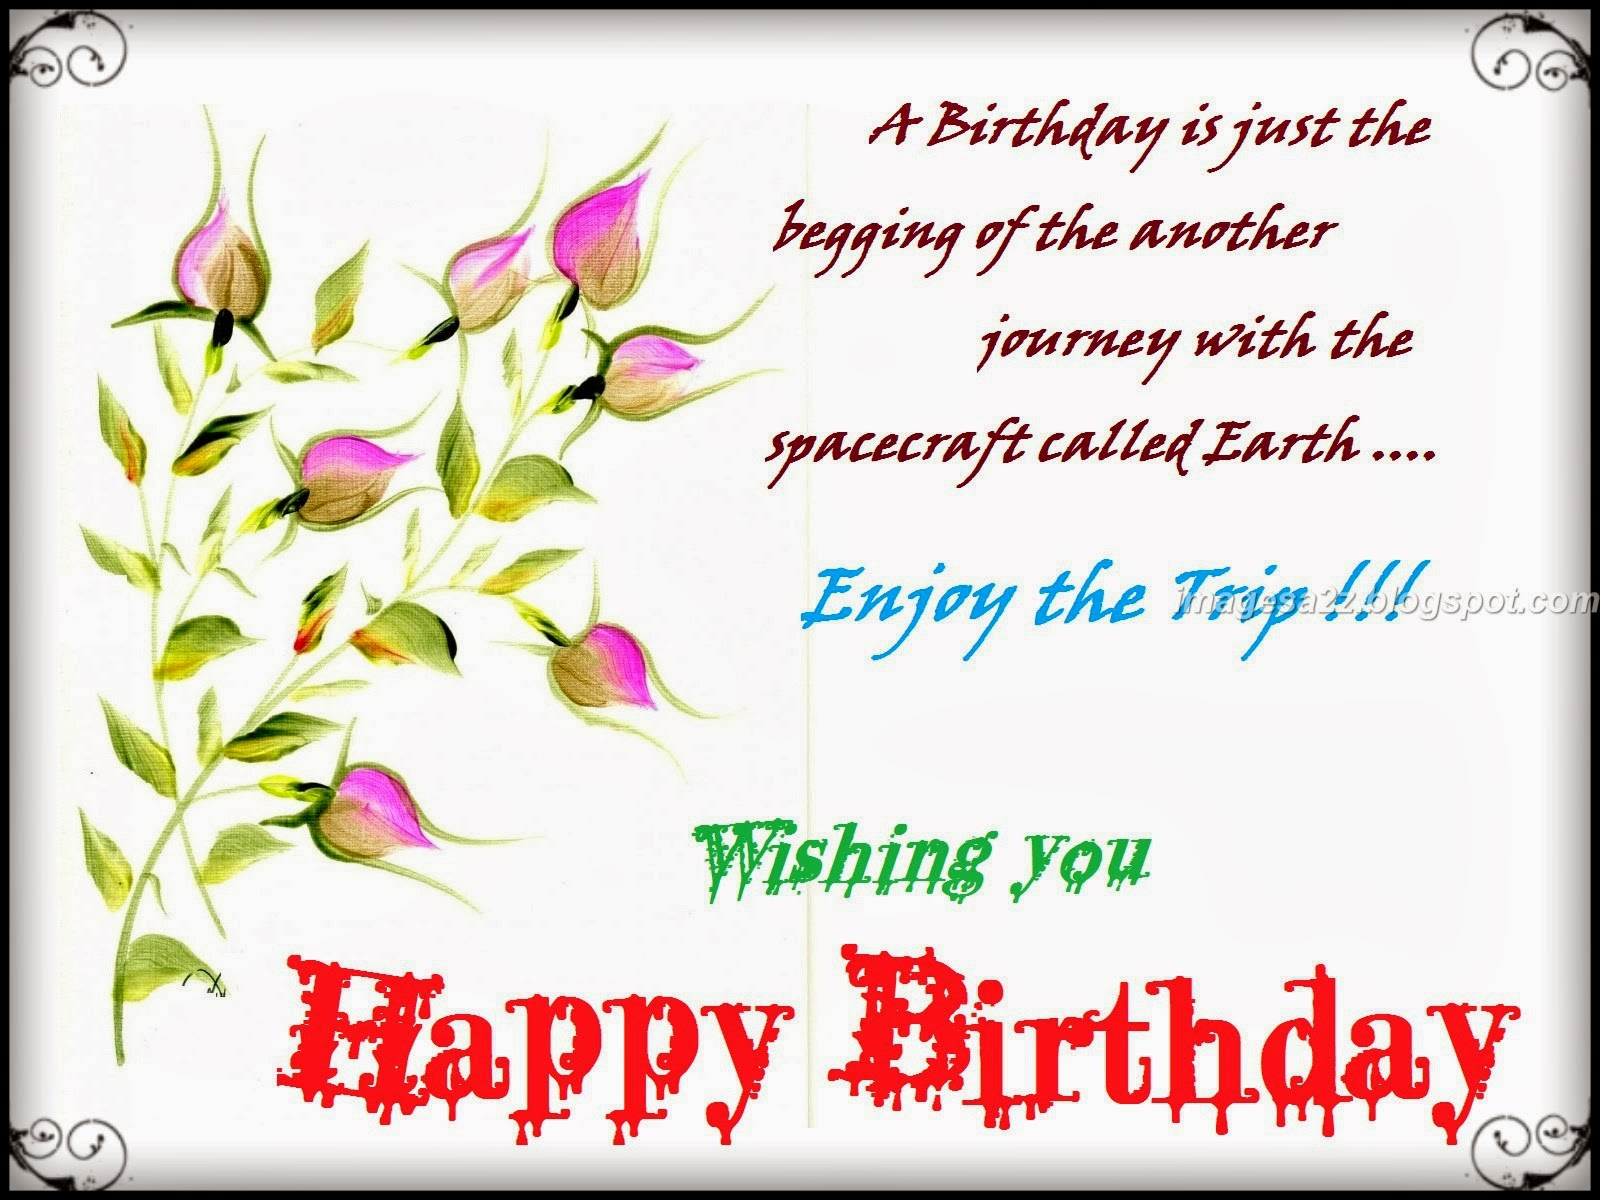 Corporate birthday card messages ideas